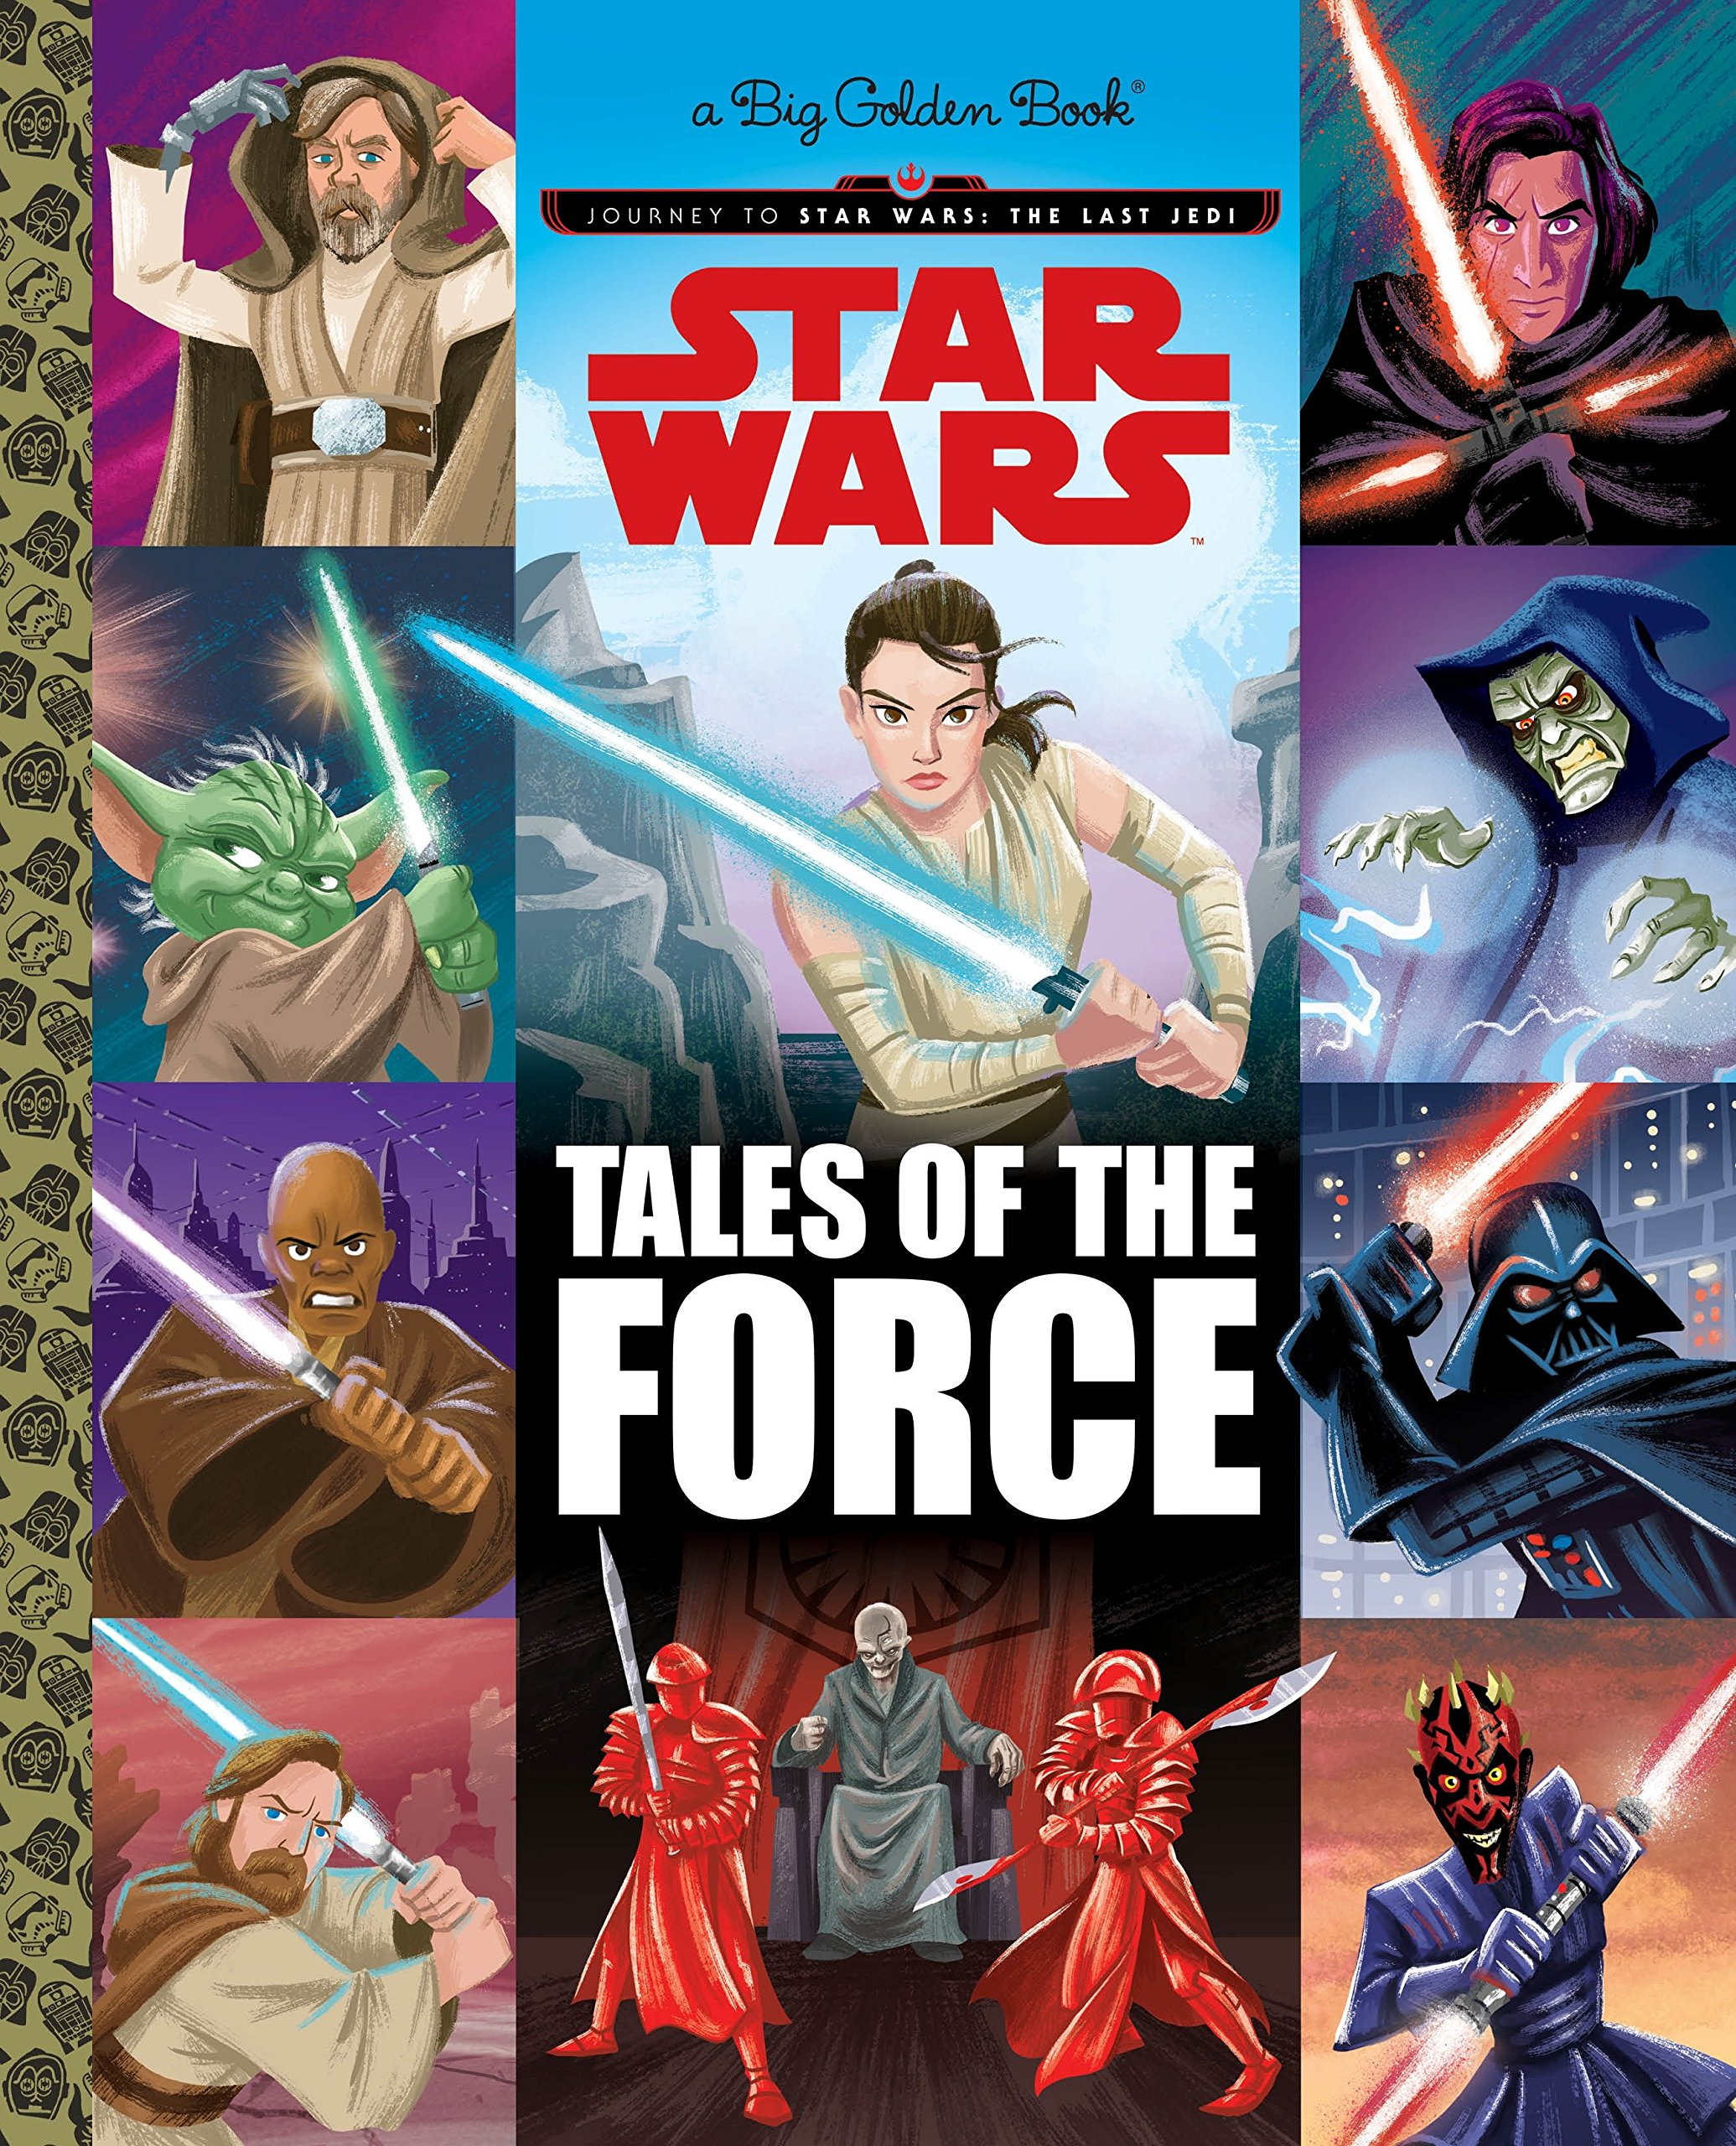 Tales of the Force (Star Wars) (Big Golden Book): Golden Books, Ron Cohee:  9781524770907: Amazon.com: Books